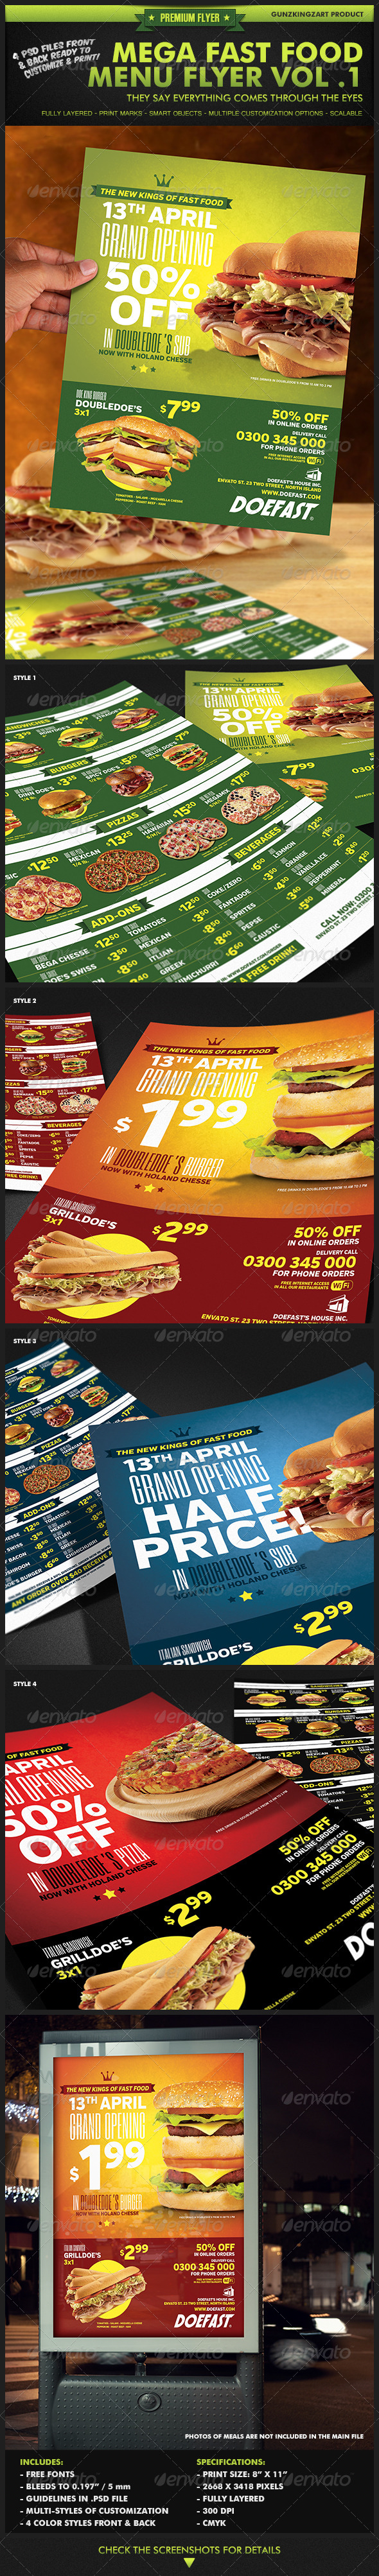 Mega Fast Food Menu Flyer Vol. 1 - Restaurant Flyers